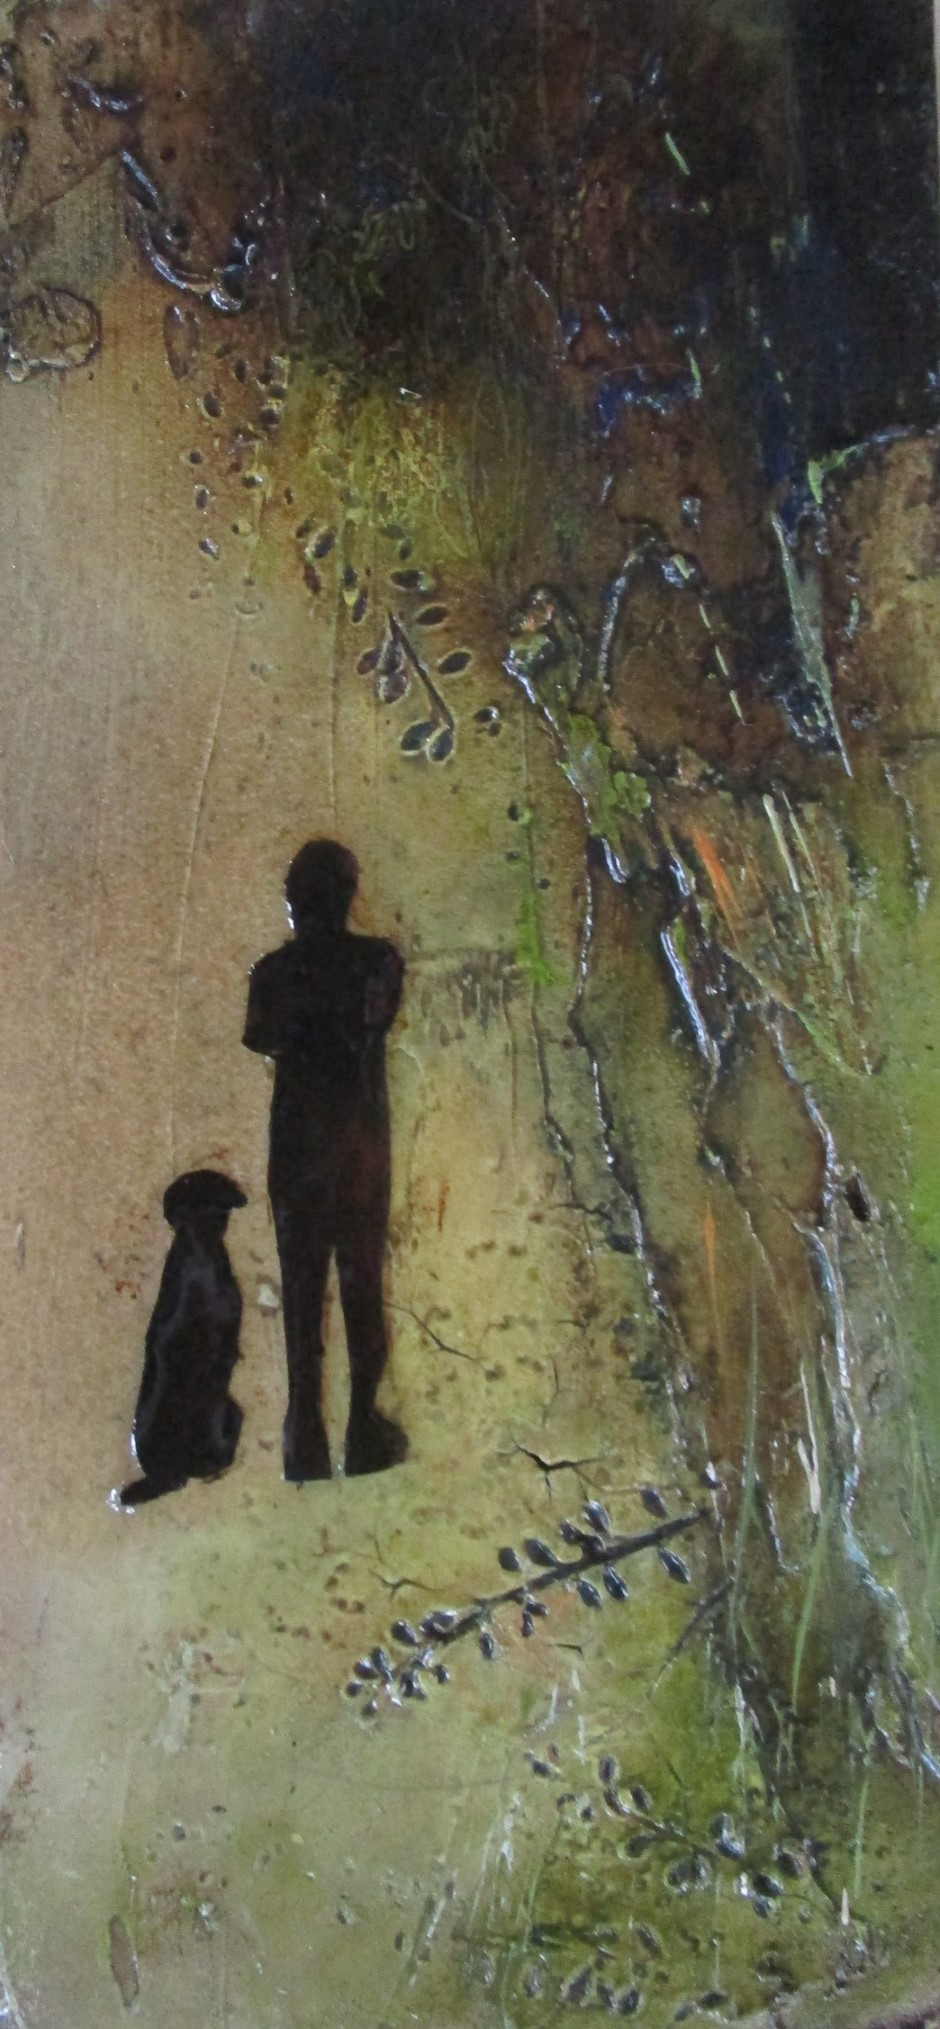 Waiting Together - Mixed Media on Board - 21x10cm - Aity-4 2018 08.JPG